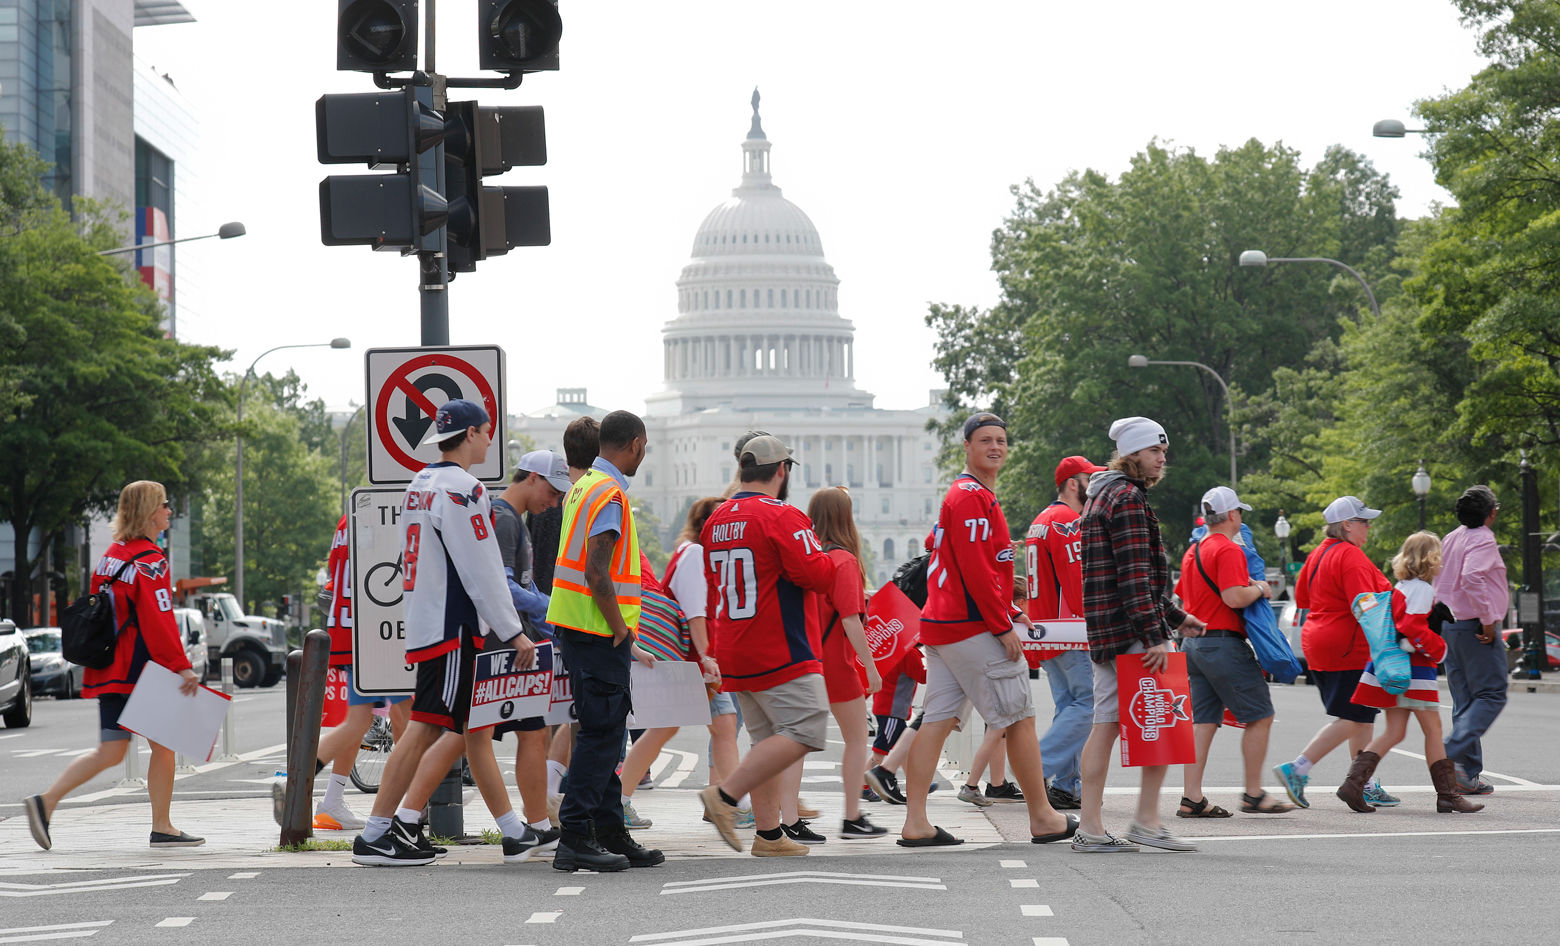 Fans cross Pennsylvania Ave., as they head towards the Washington Capitals Stanley Cup victory parade route on the National Mall in Washington, Tuesday, June 12, 2018. (AP Photo/Pablo Martinez Monsivais)